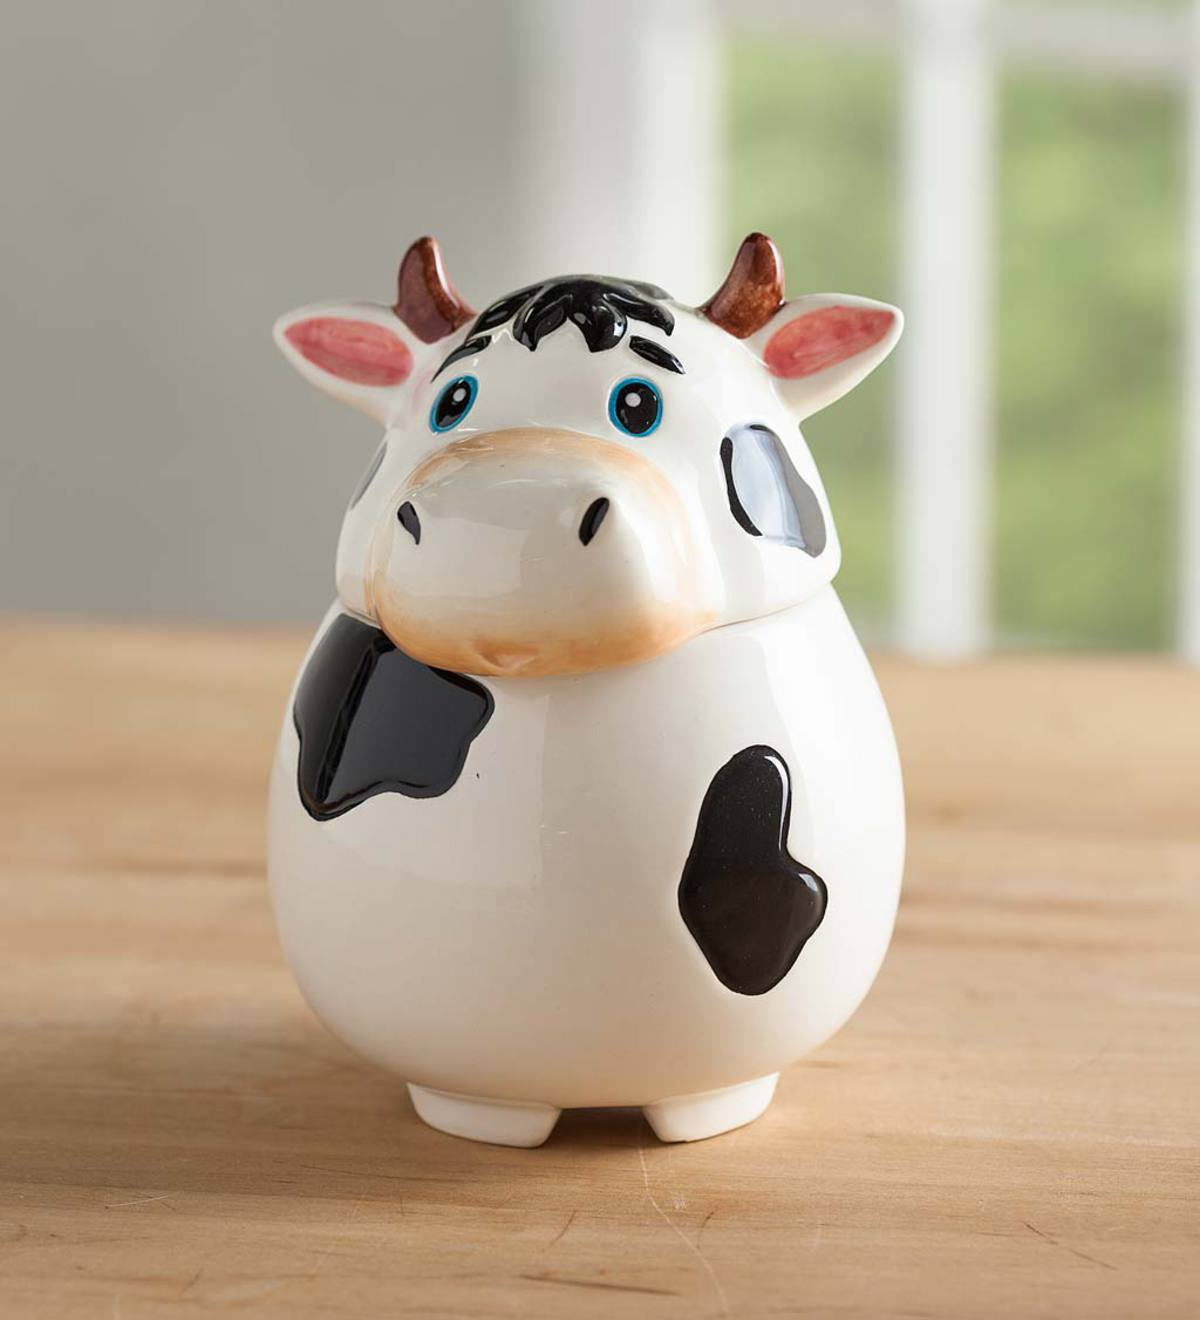 Ceramic Cow Fruit Fly Trap - Cow